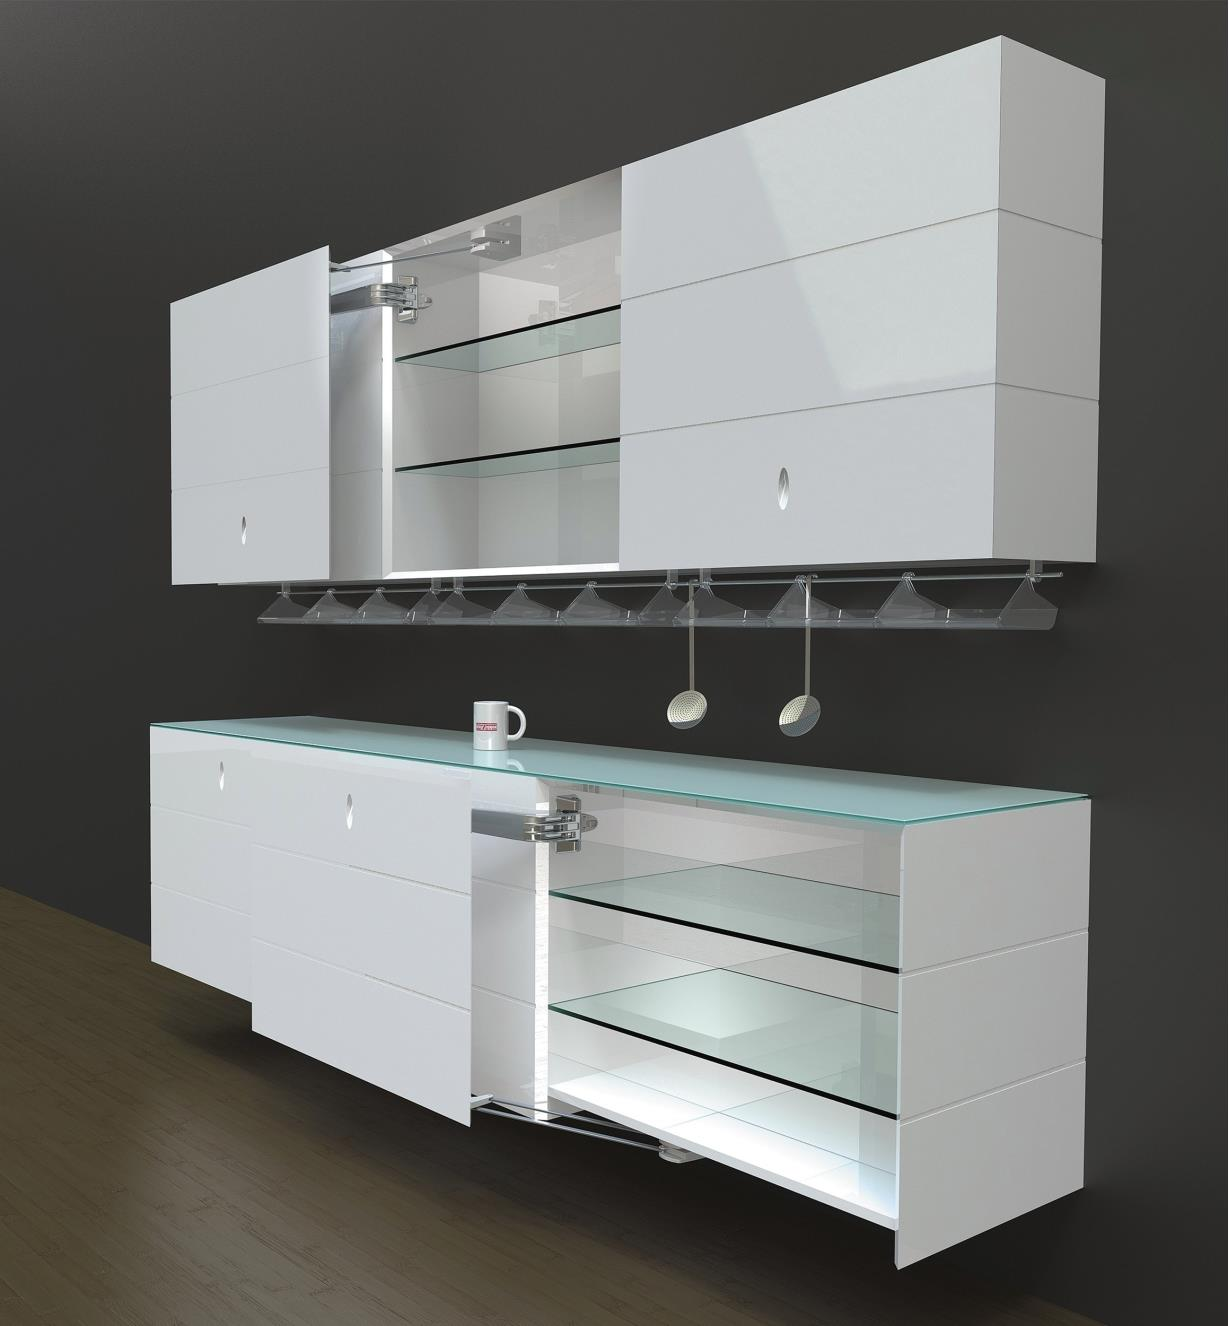 Servetto Galley Door Mechanisms